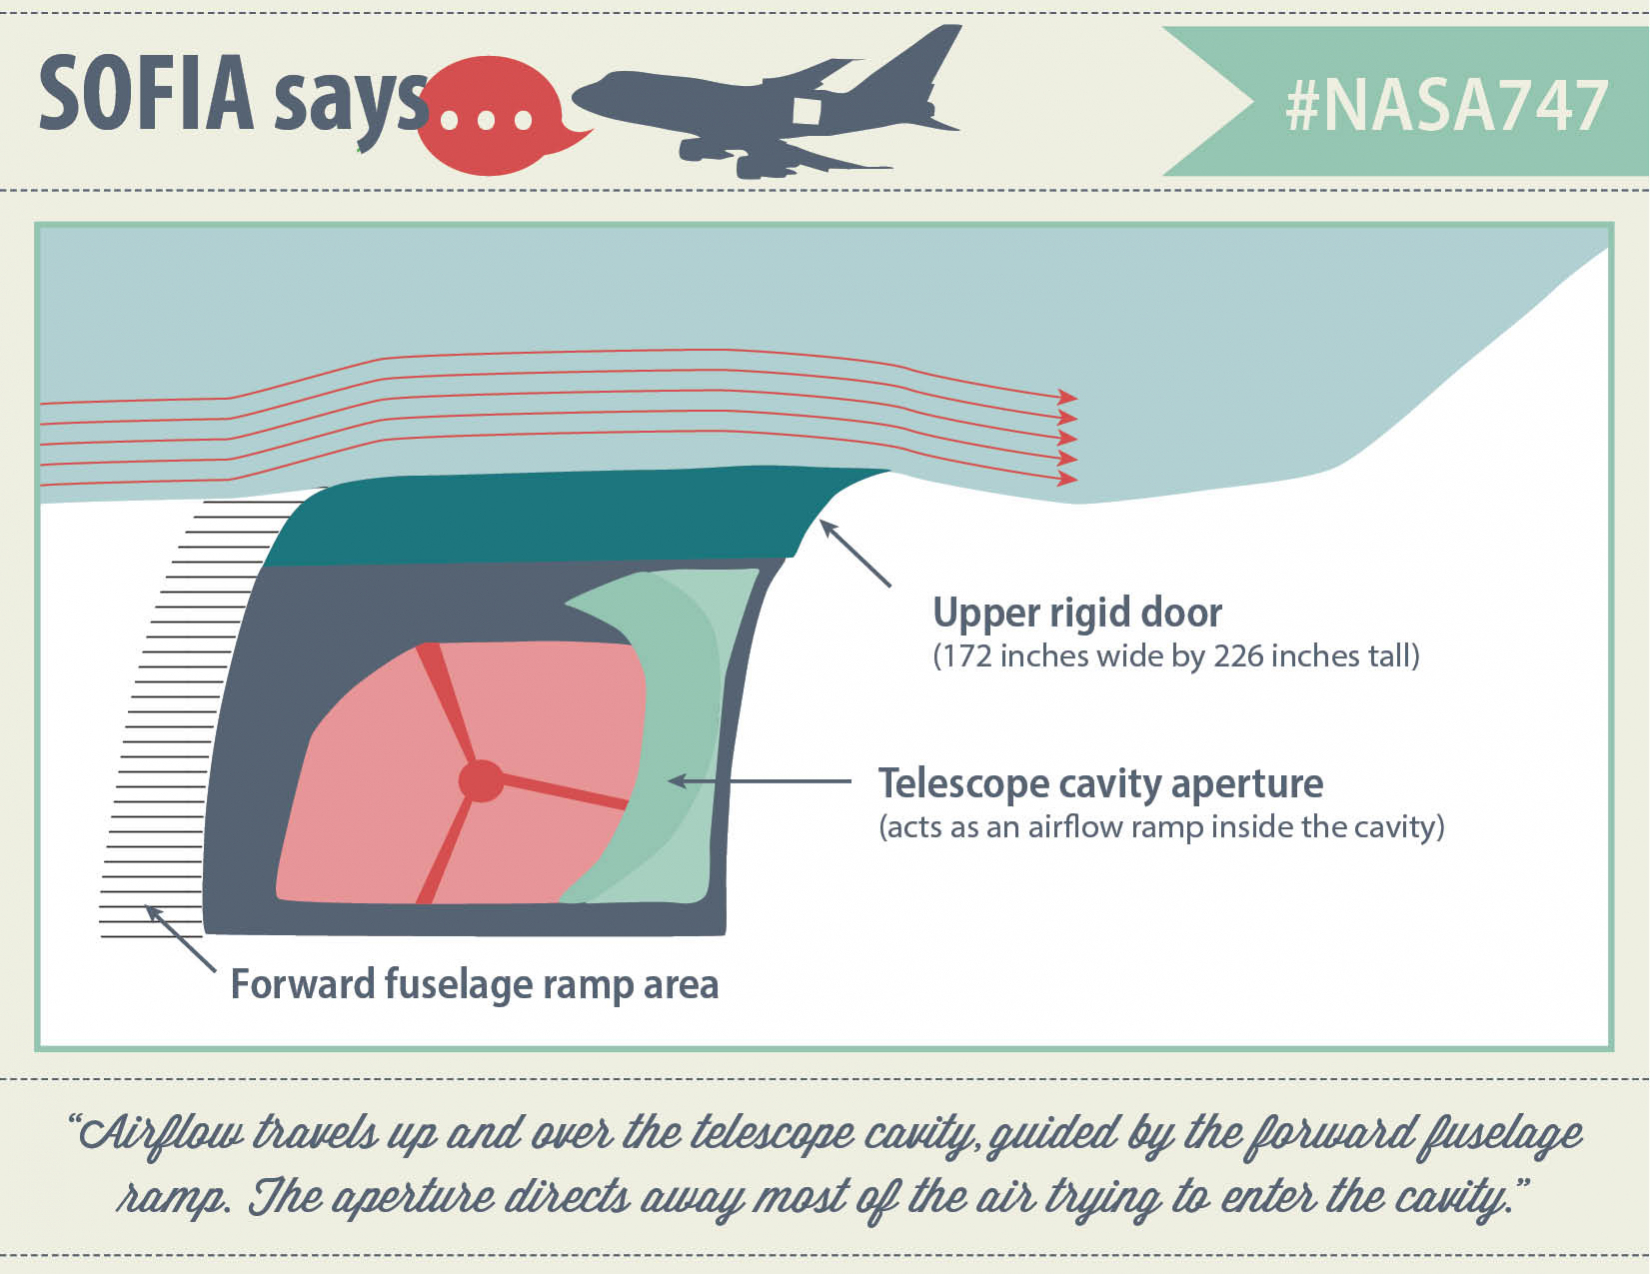 Infographic showing SOFIA airflow traveling up and over the telescope cavity